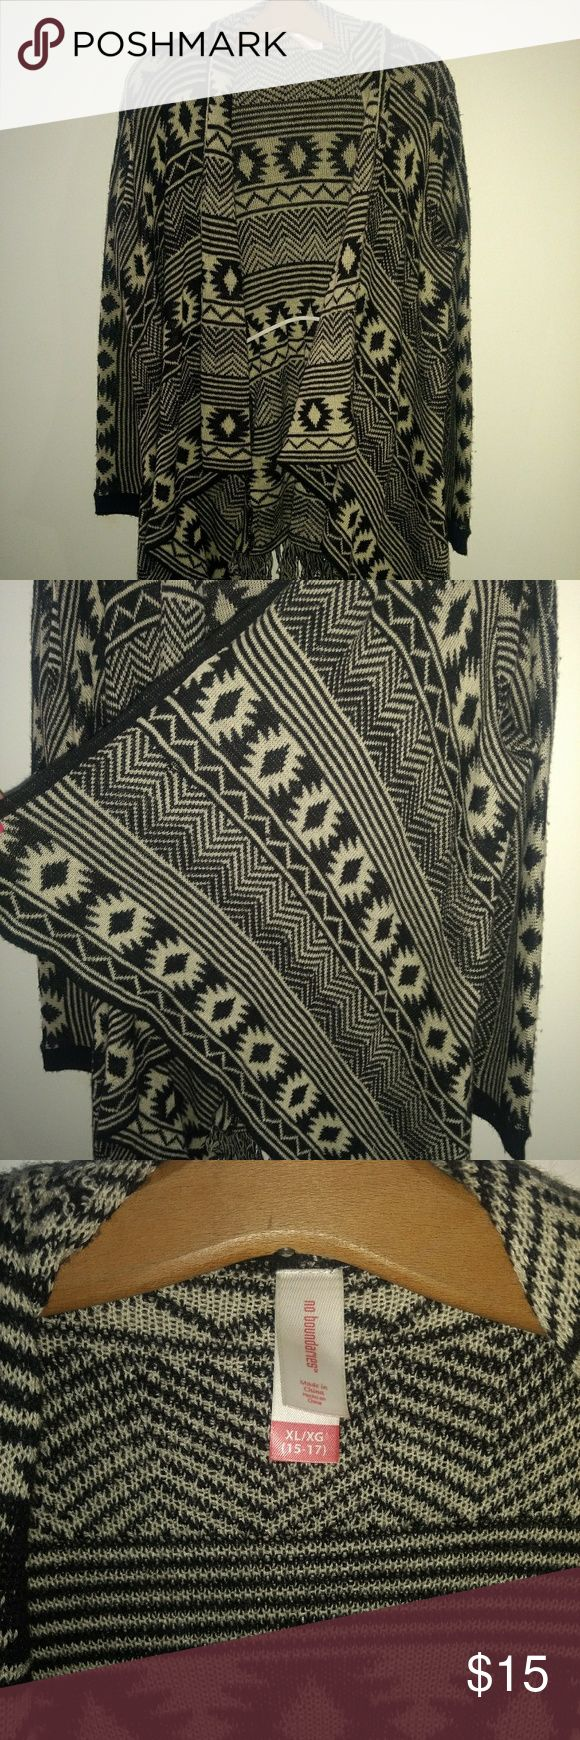 Aztec cardigan Heavier material, great for fall Cream and black Size XL No boundaries No Boundaries Sweaters